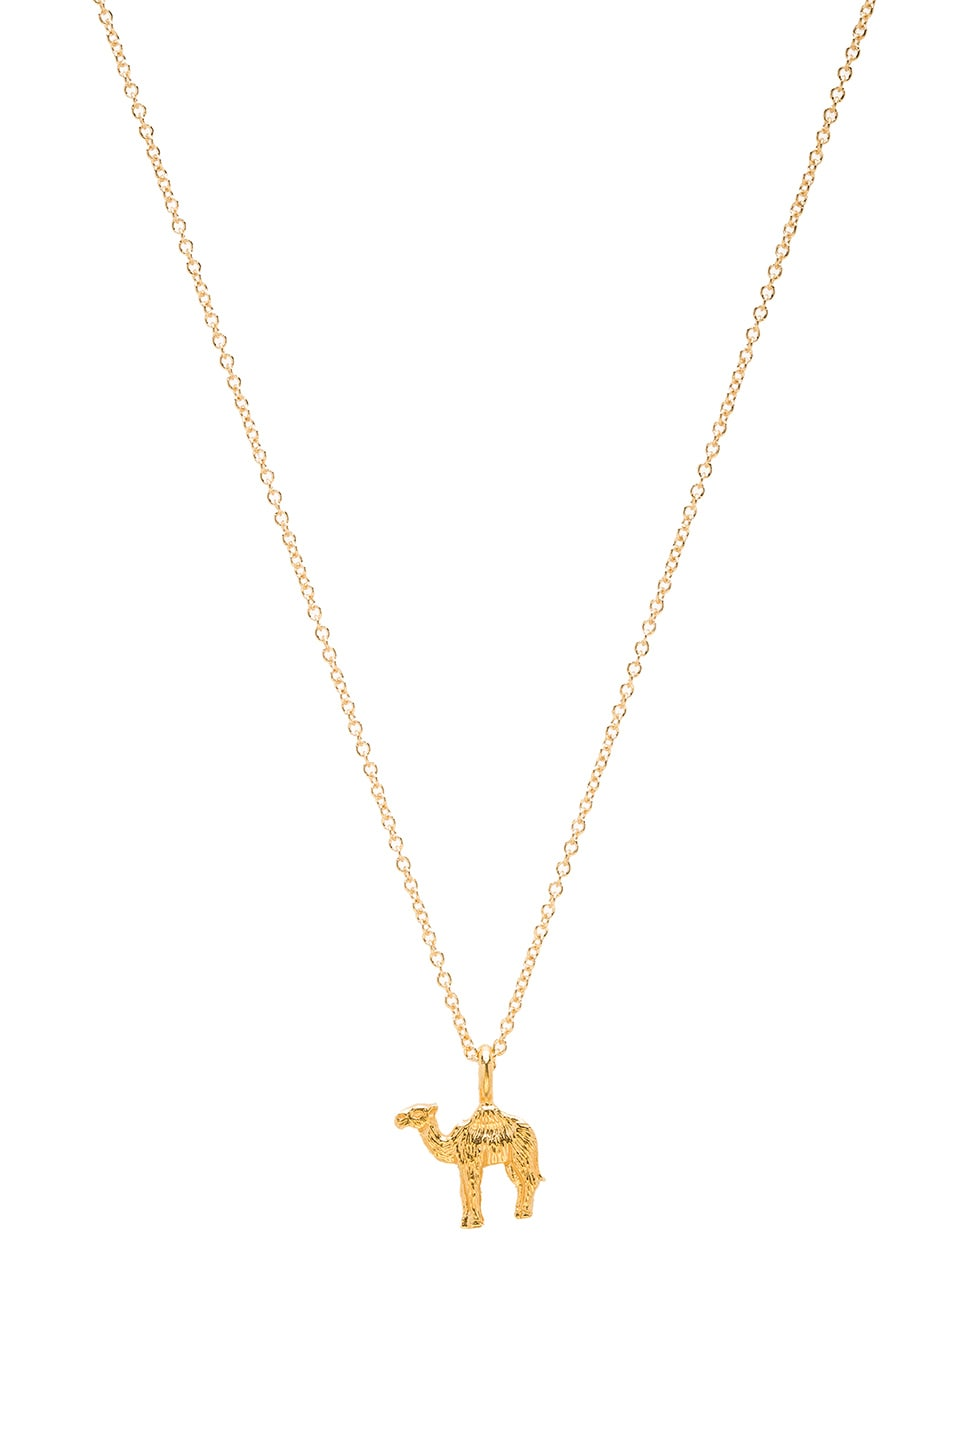 Dogeared Enjoy The Journey Necklace Charm in Gold Dipped